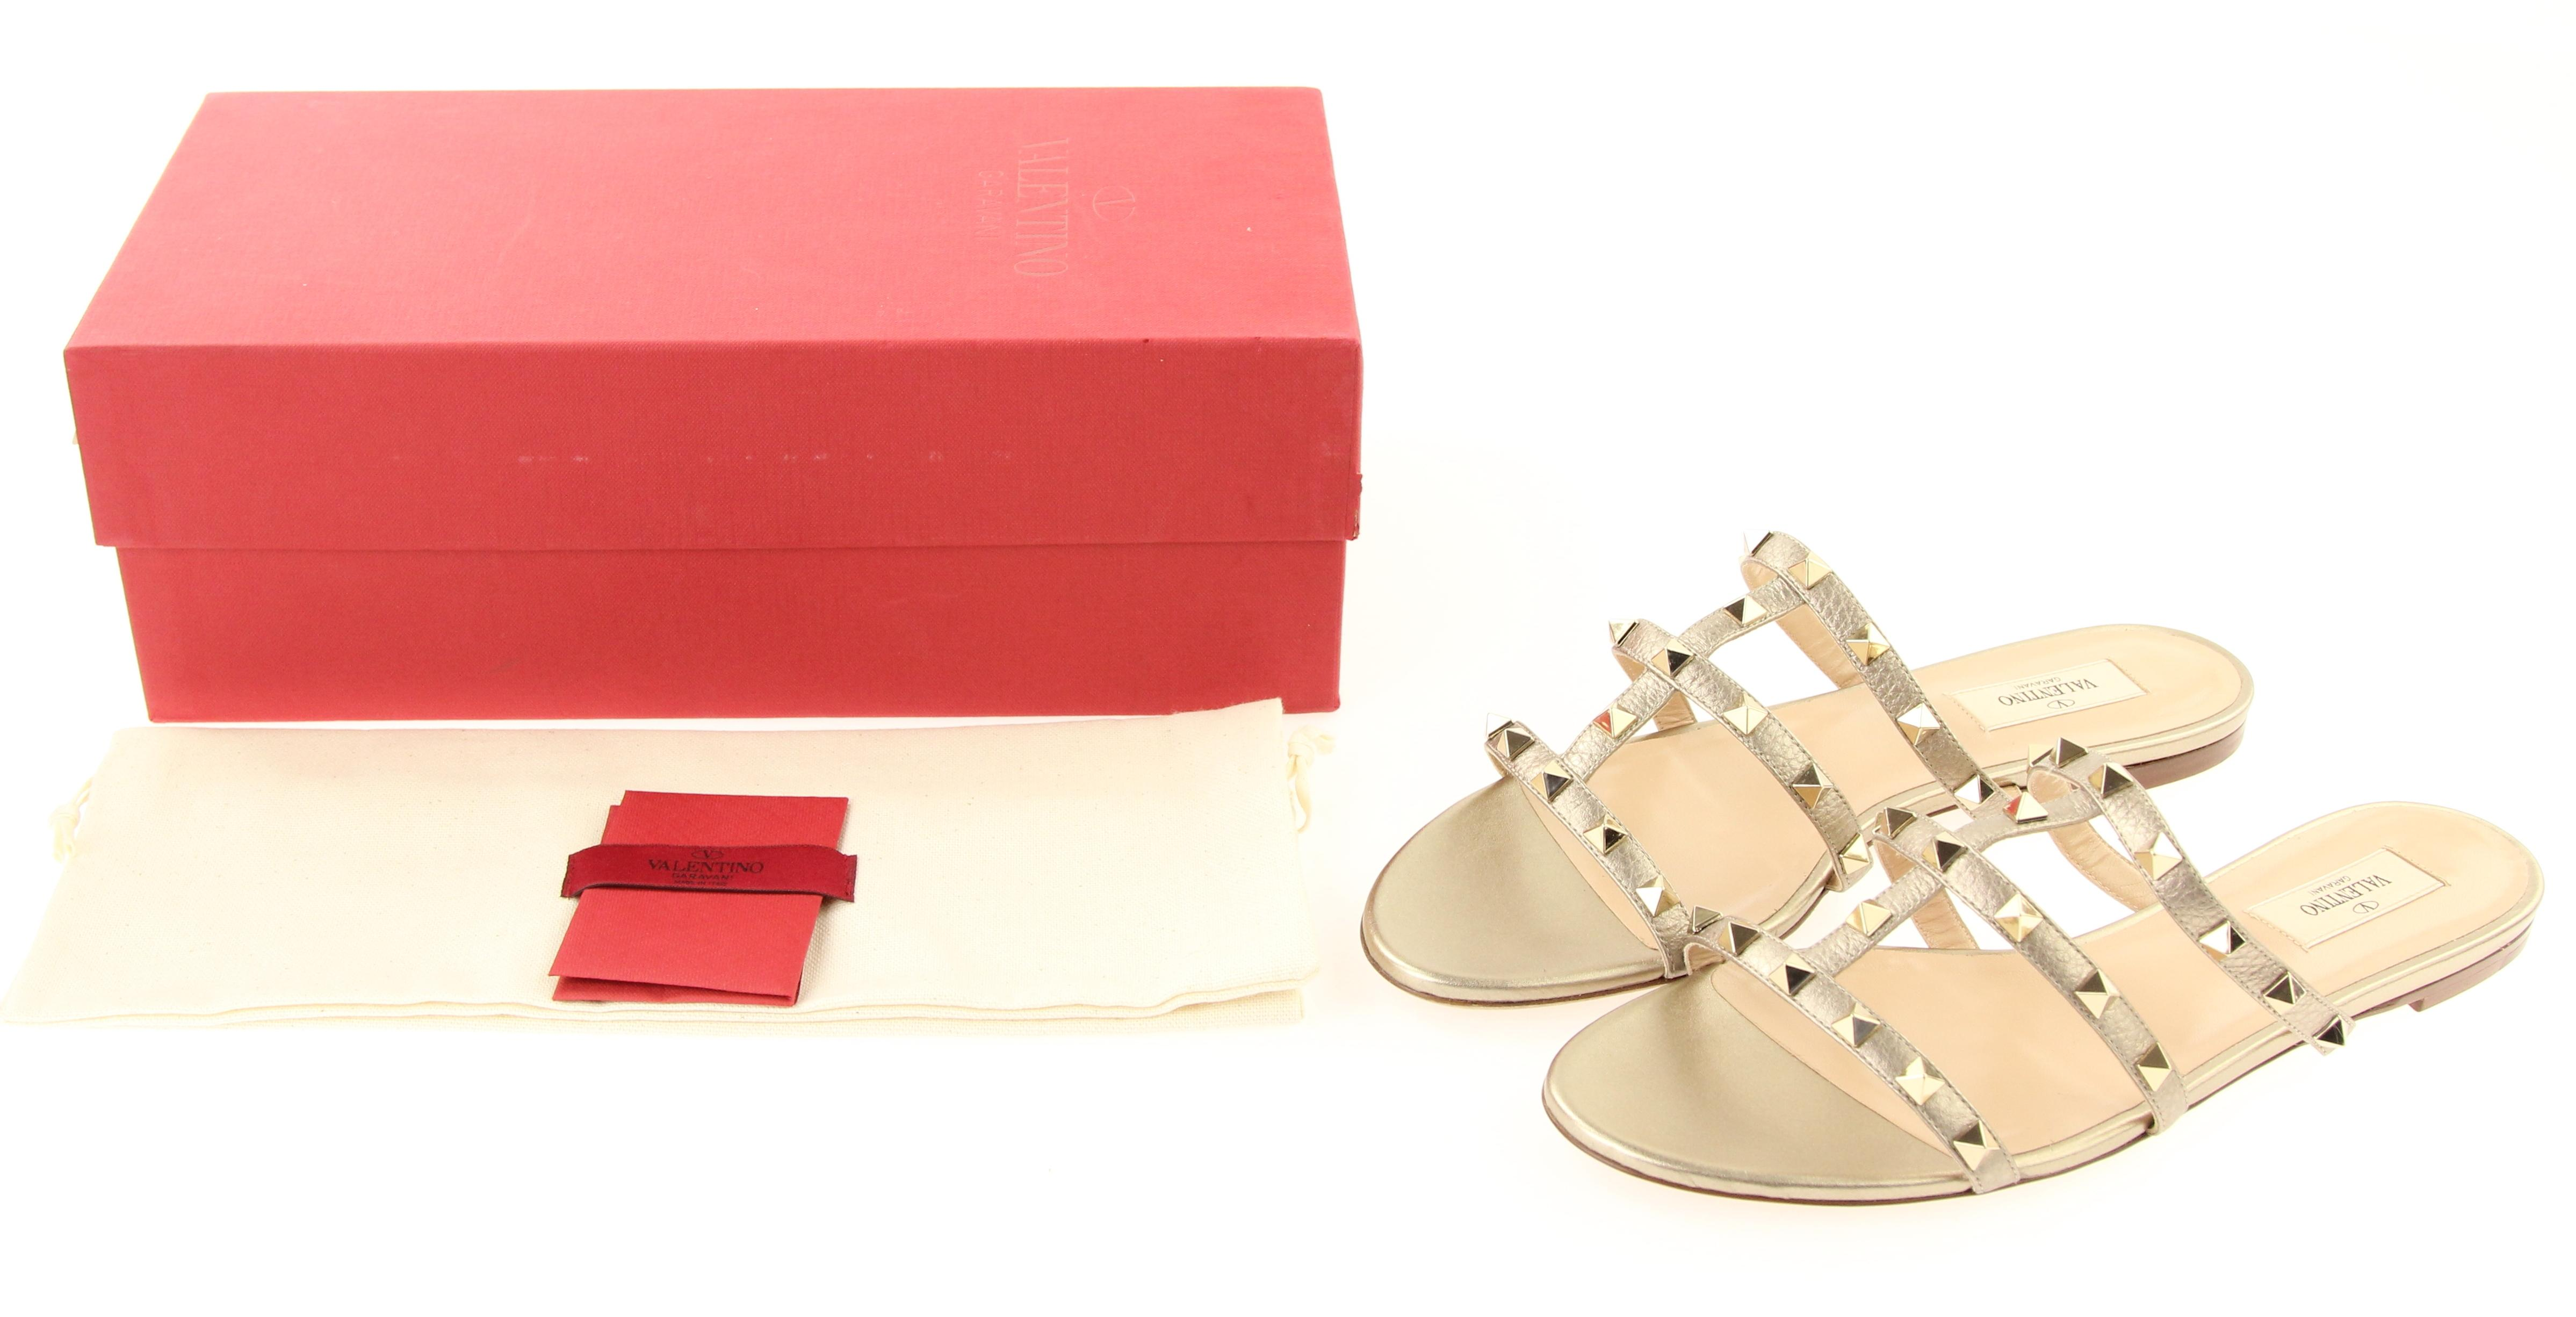 c8eb1a4fb03 ... Valentino Gold Classic Metallic Rockstud Caged Leather Slides Sandals  Sandals Sandals Size EU 40.5 (Approx ...